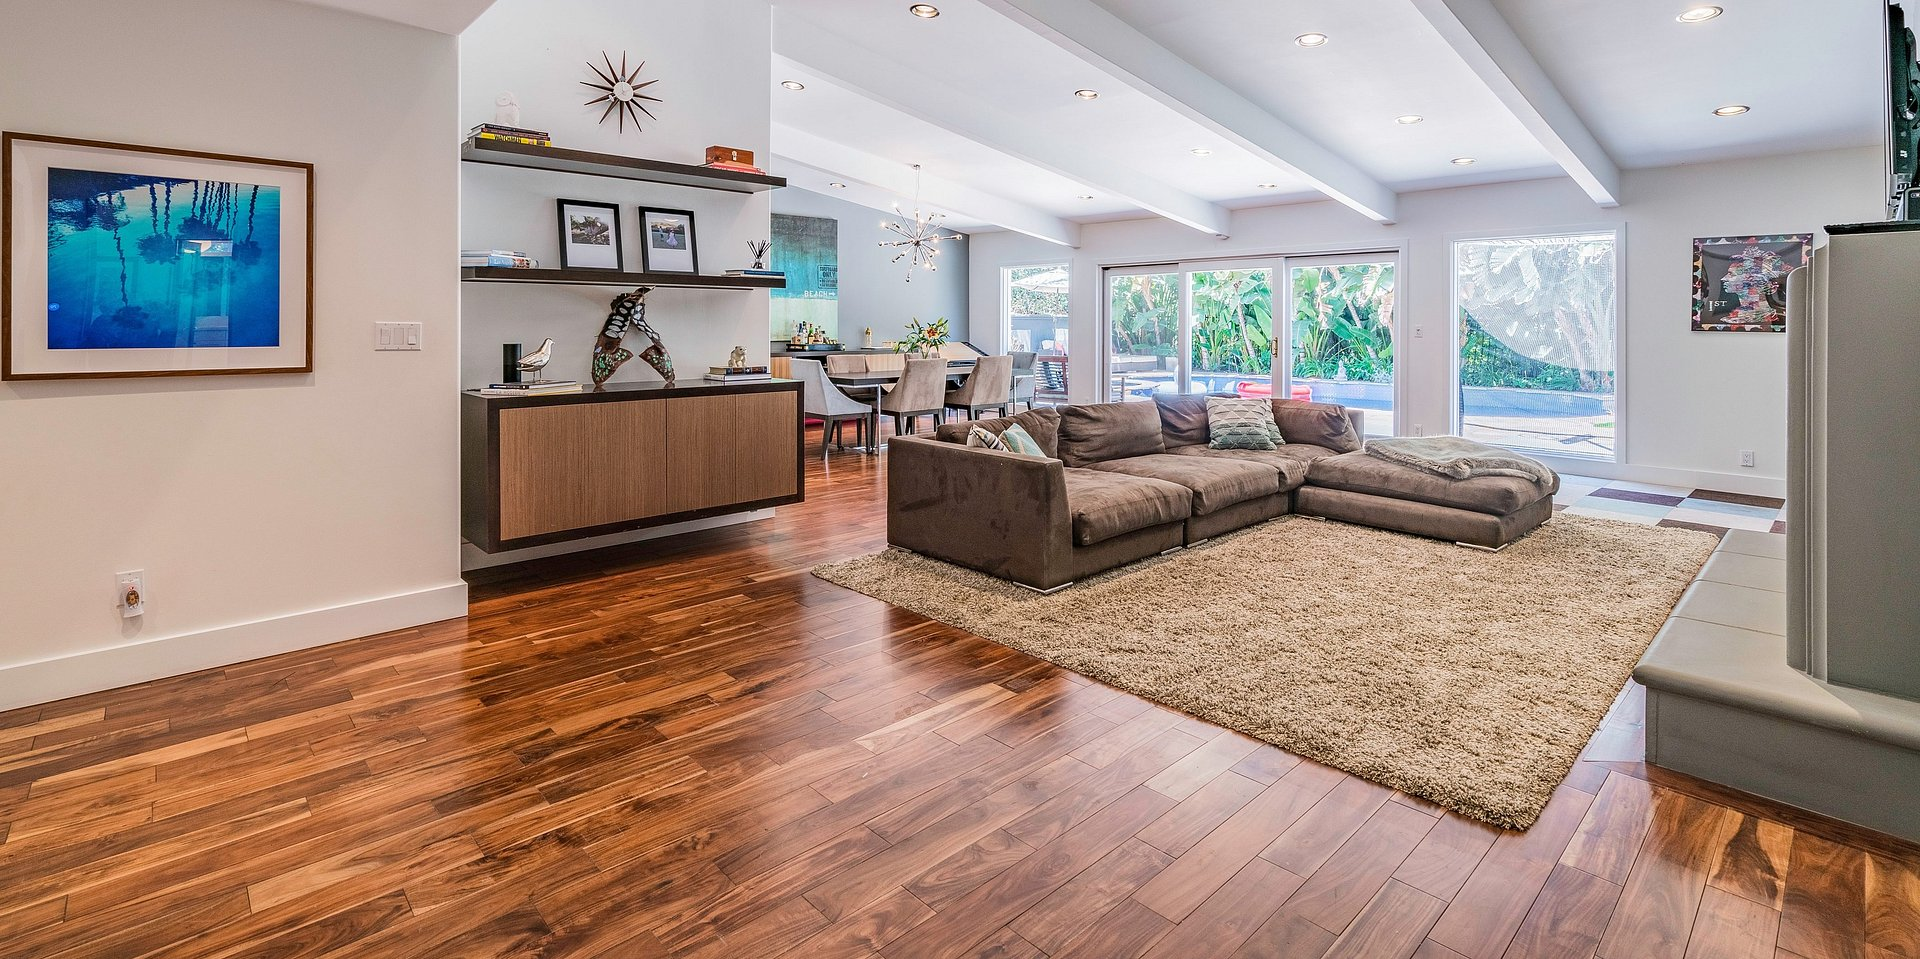 Coldwell Banker Residential Brokerage Lists Sherman Oaks Property Designed by Jeff Lewis of Bravo TV's Flipping Out for $2.195 Million